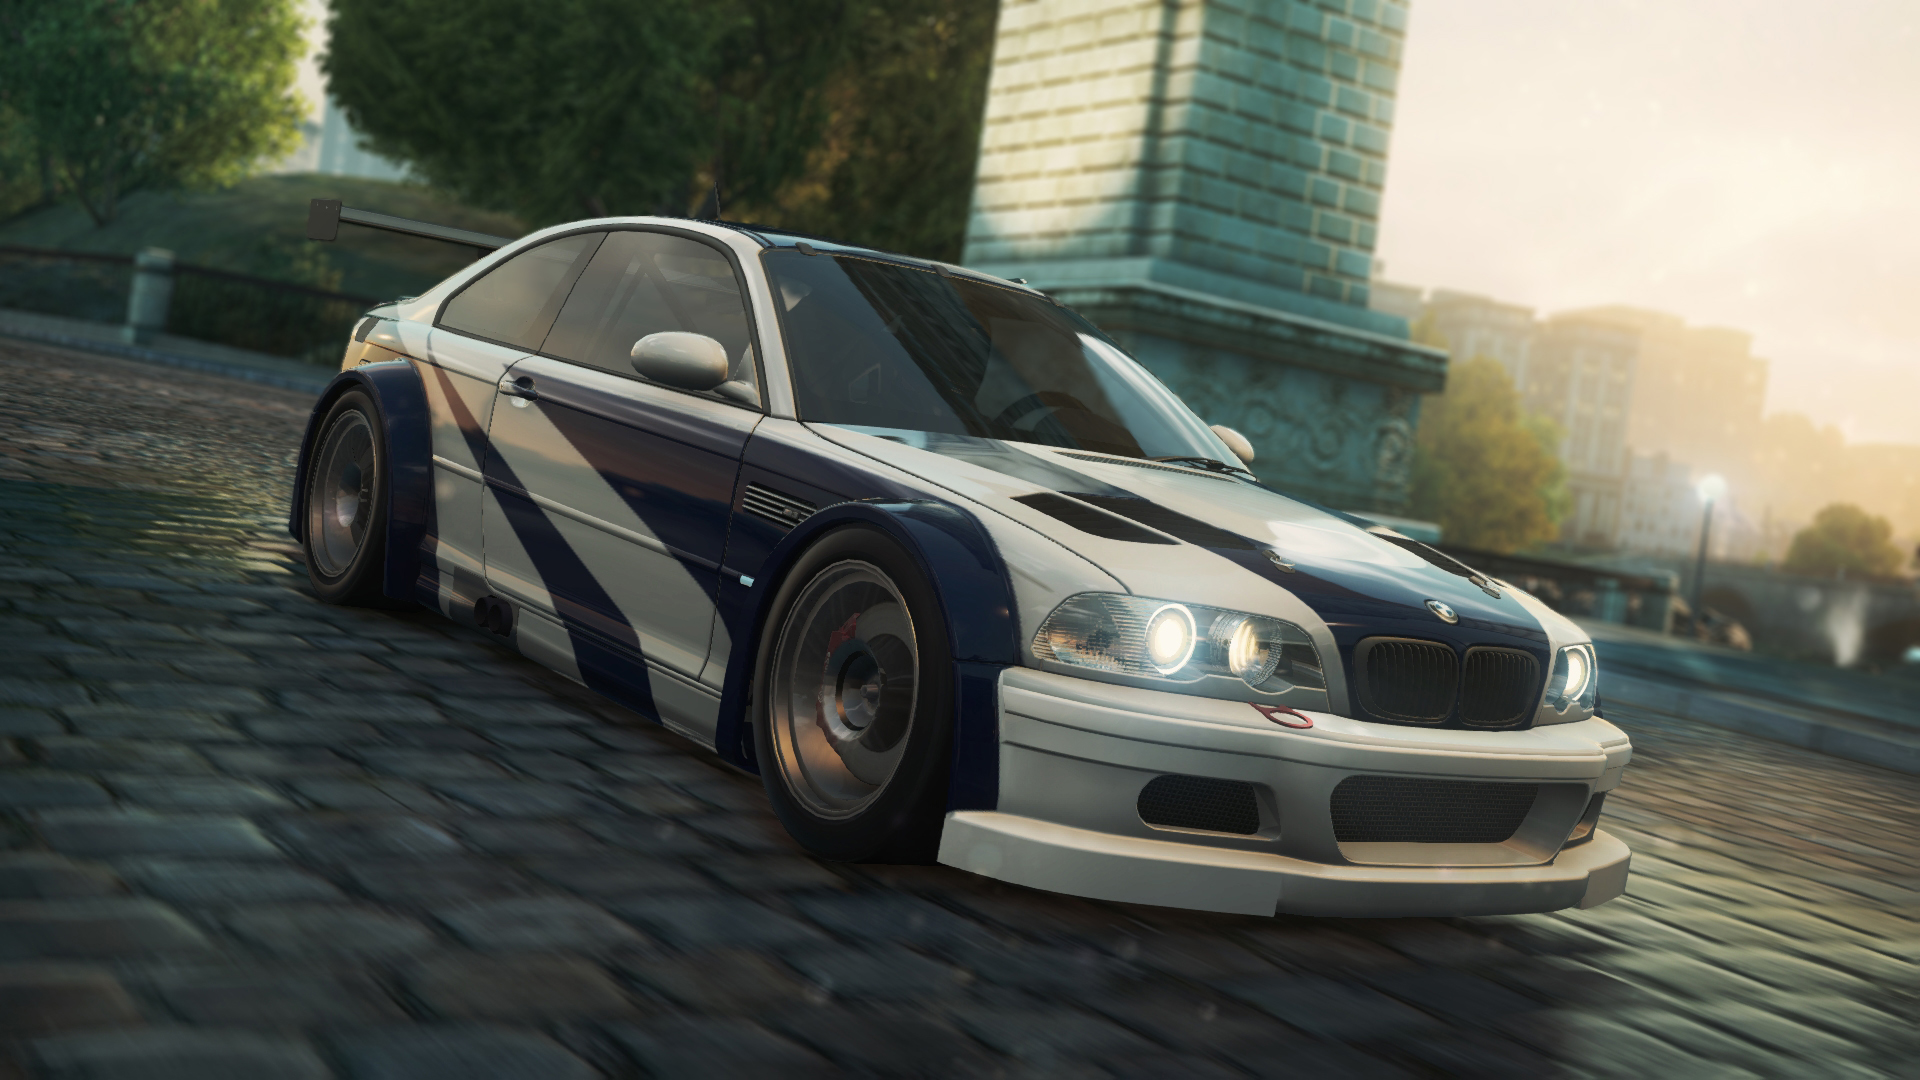 BMW M3 GTR (Race) | Need for Speed Wiki | FANDOM powered by